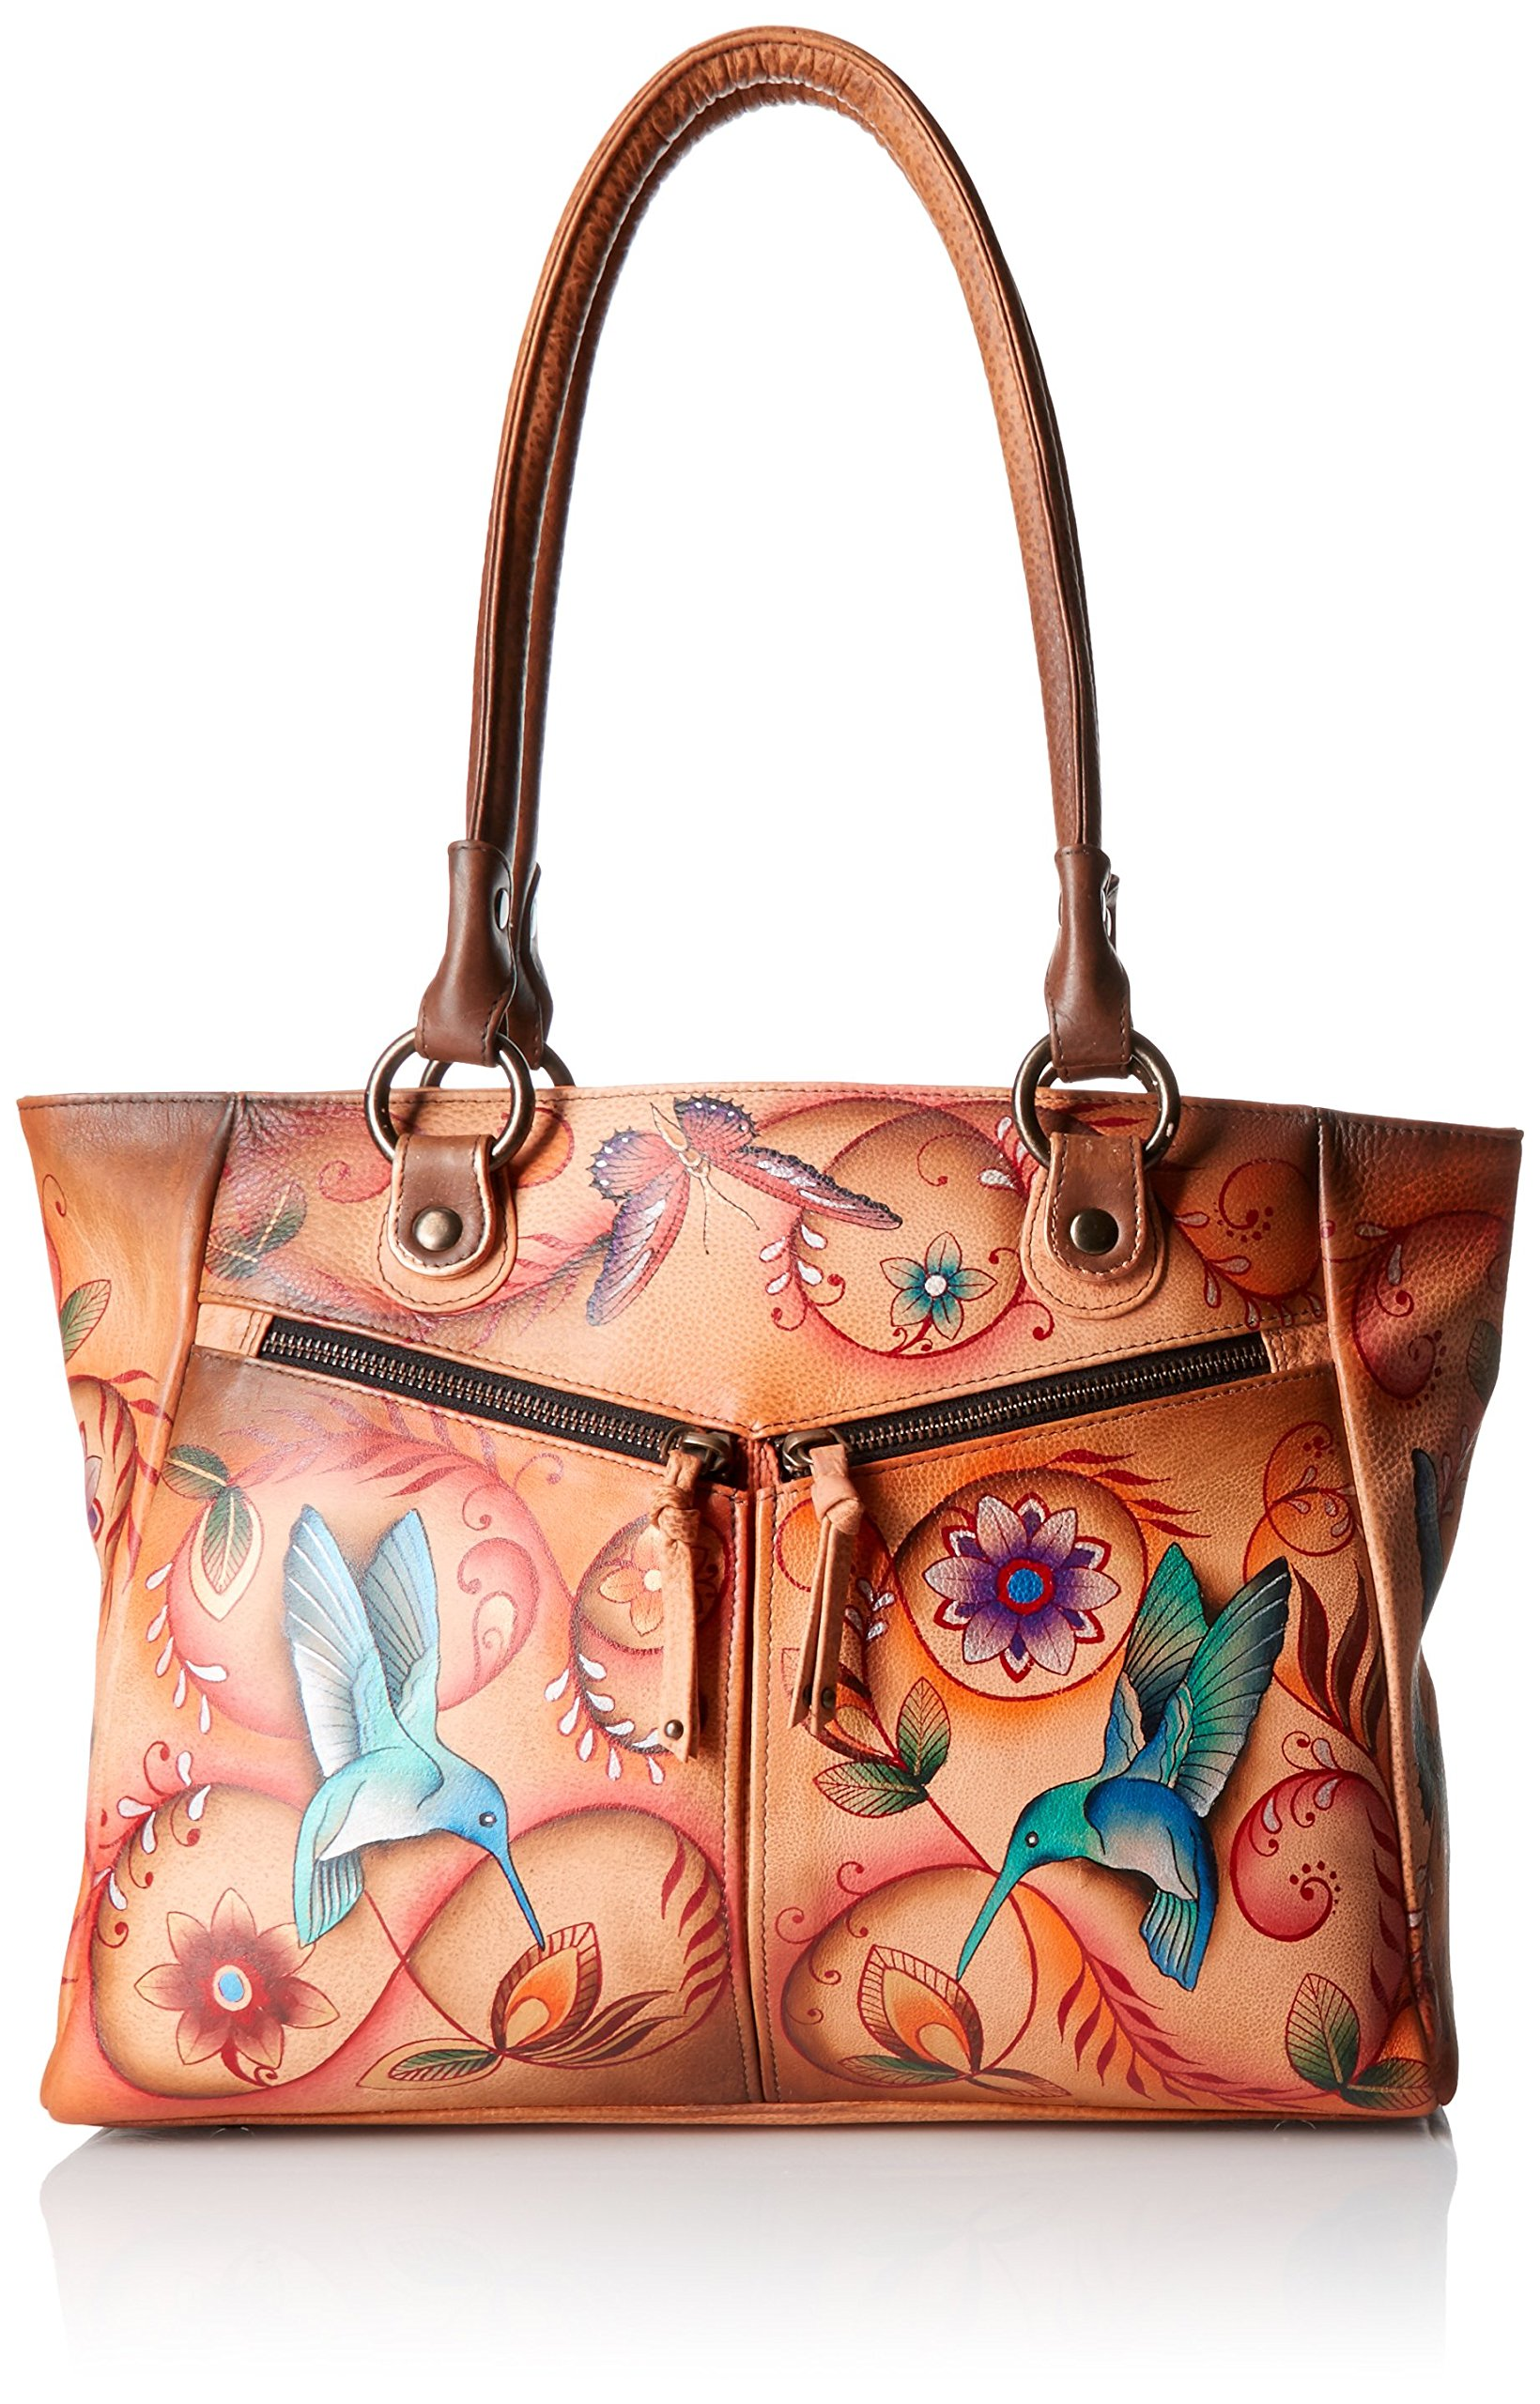 Anuschka Handpainted Leather Large Shopper with Front Pockets, Flying Jewels Tan